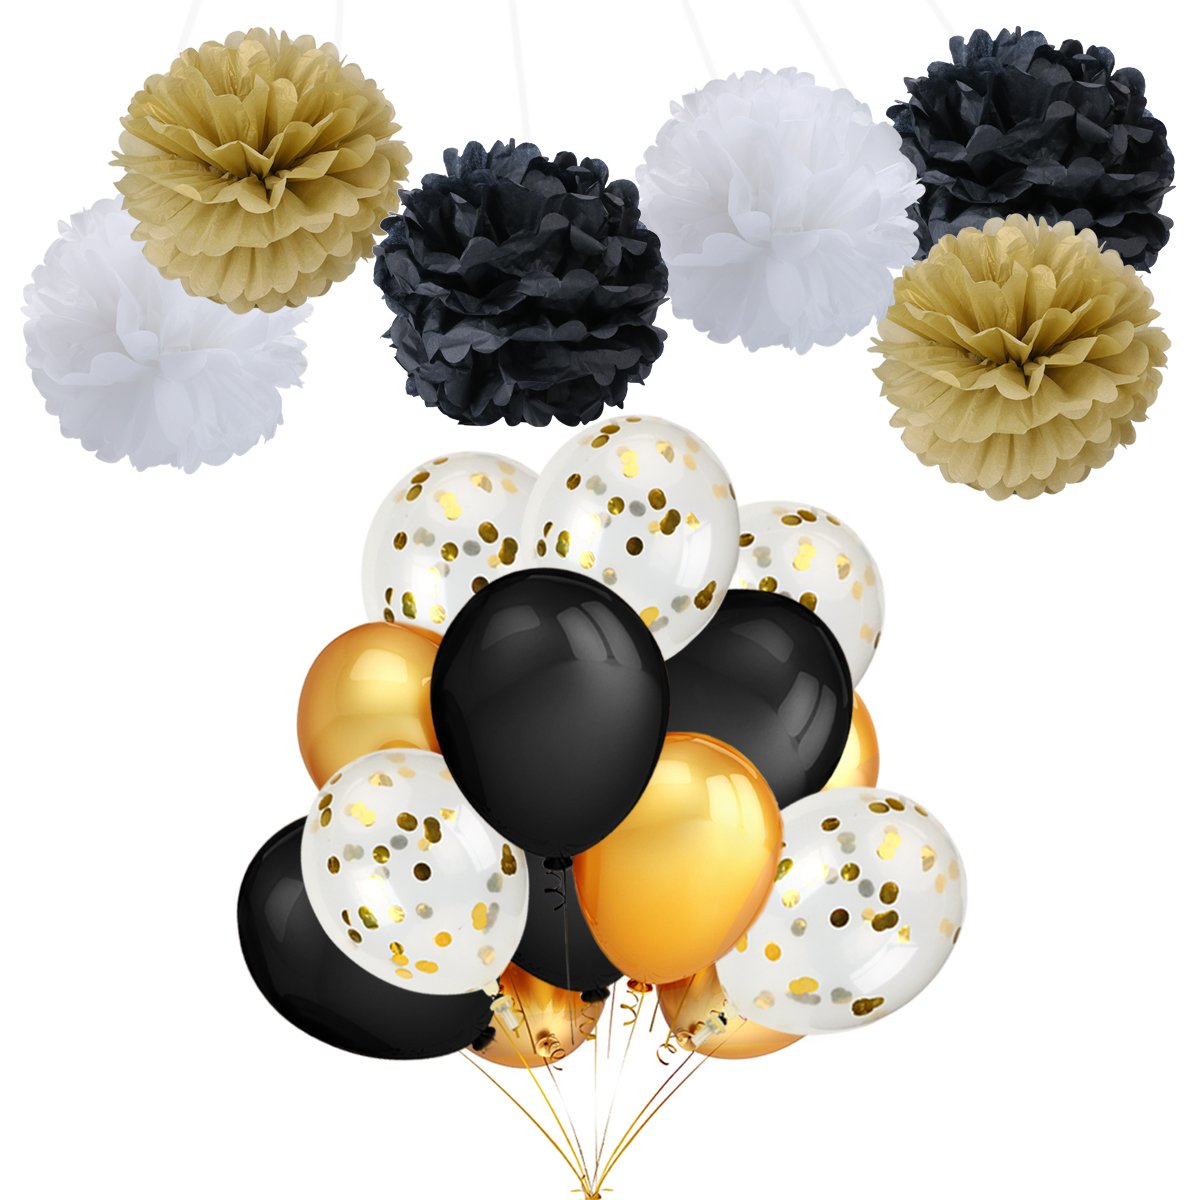 Wedding Birthday Halloween Party Supplies GBG-051 LeeSky Party Balloons Decorations,12 Pack 12 Inch Gold Confetti Balloons,40 Pack Gold /& Black Color Party Balloons and Tissue Paper Pom Poms Flowers